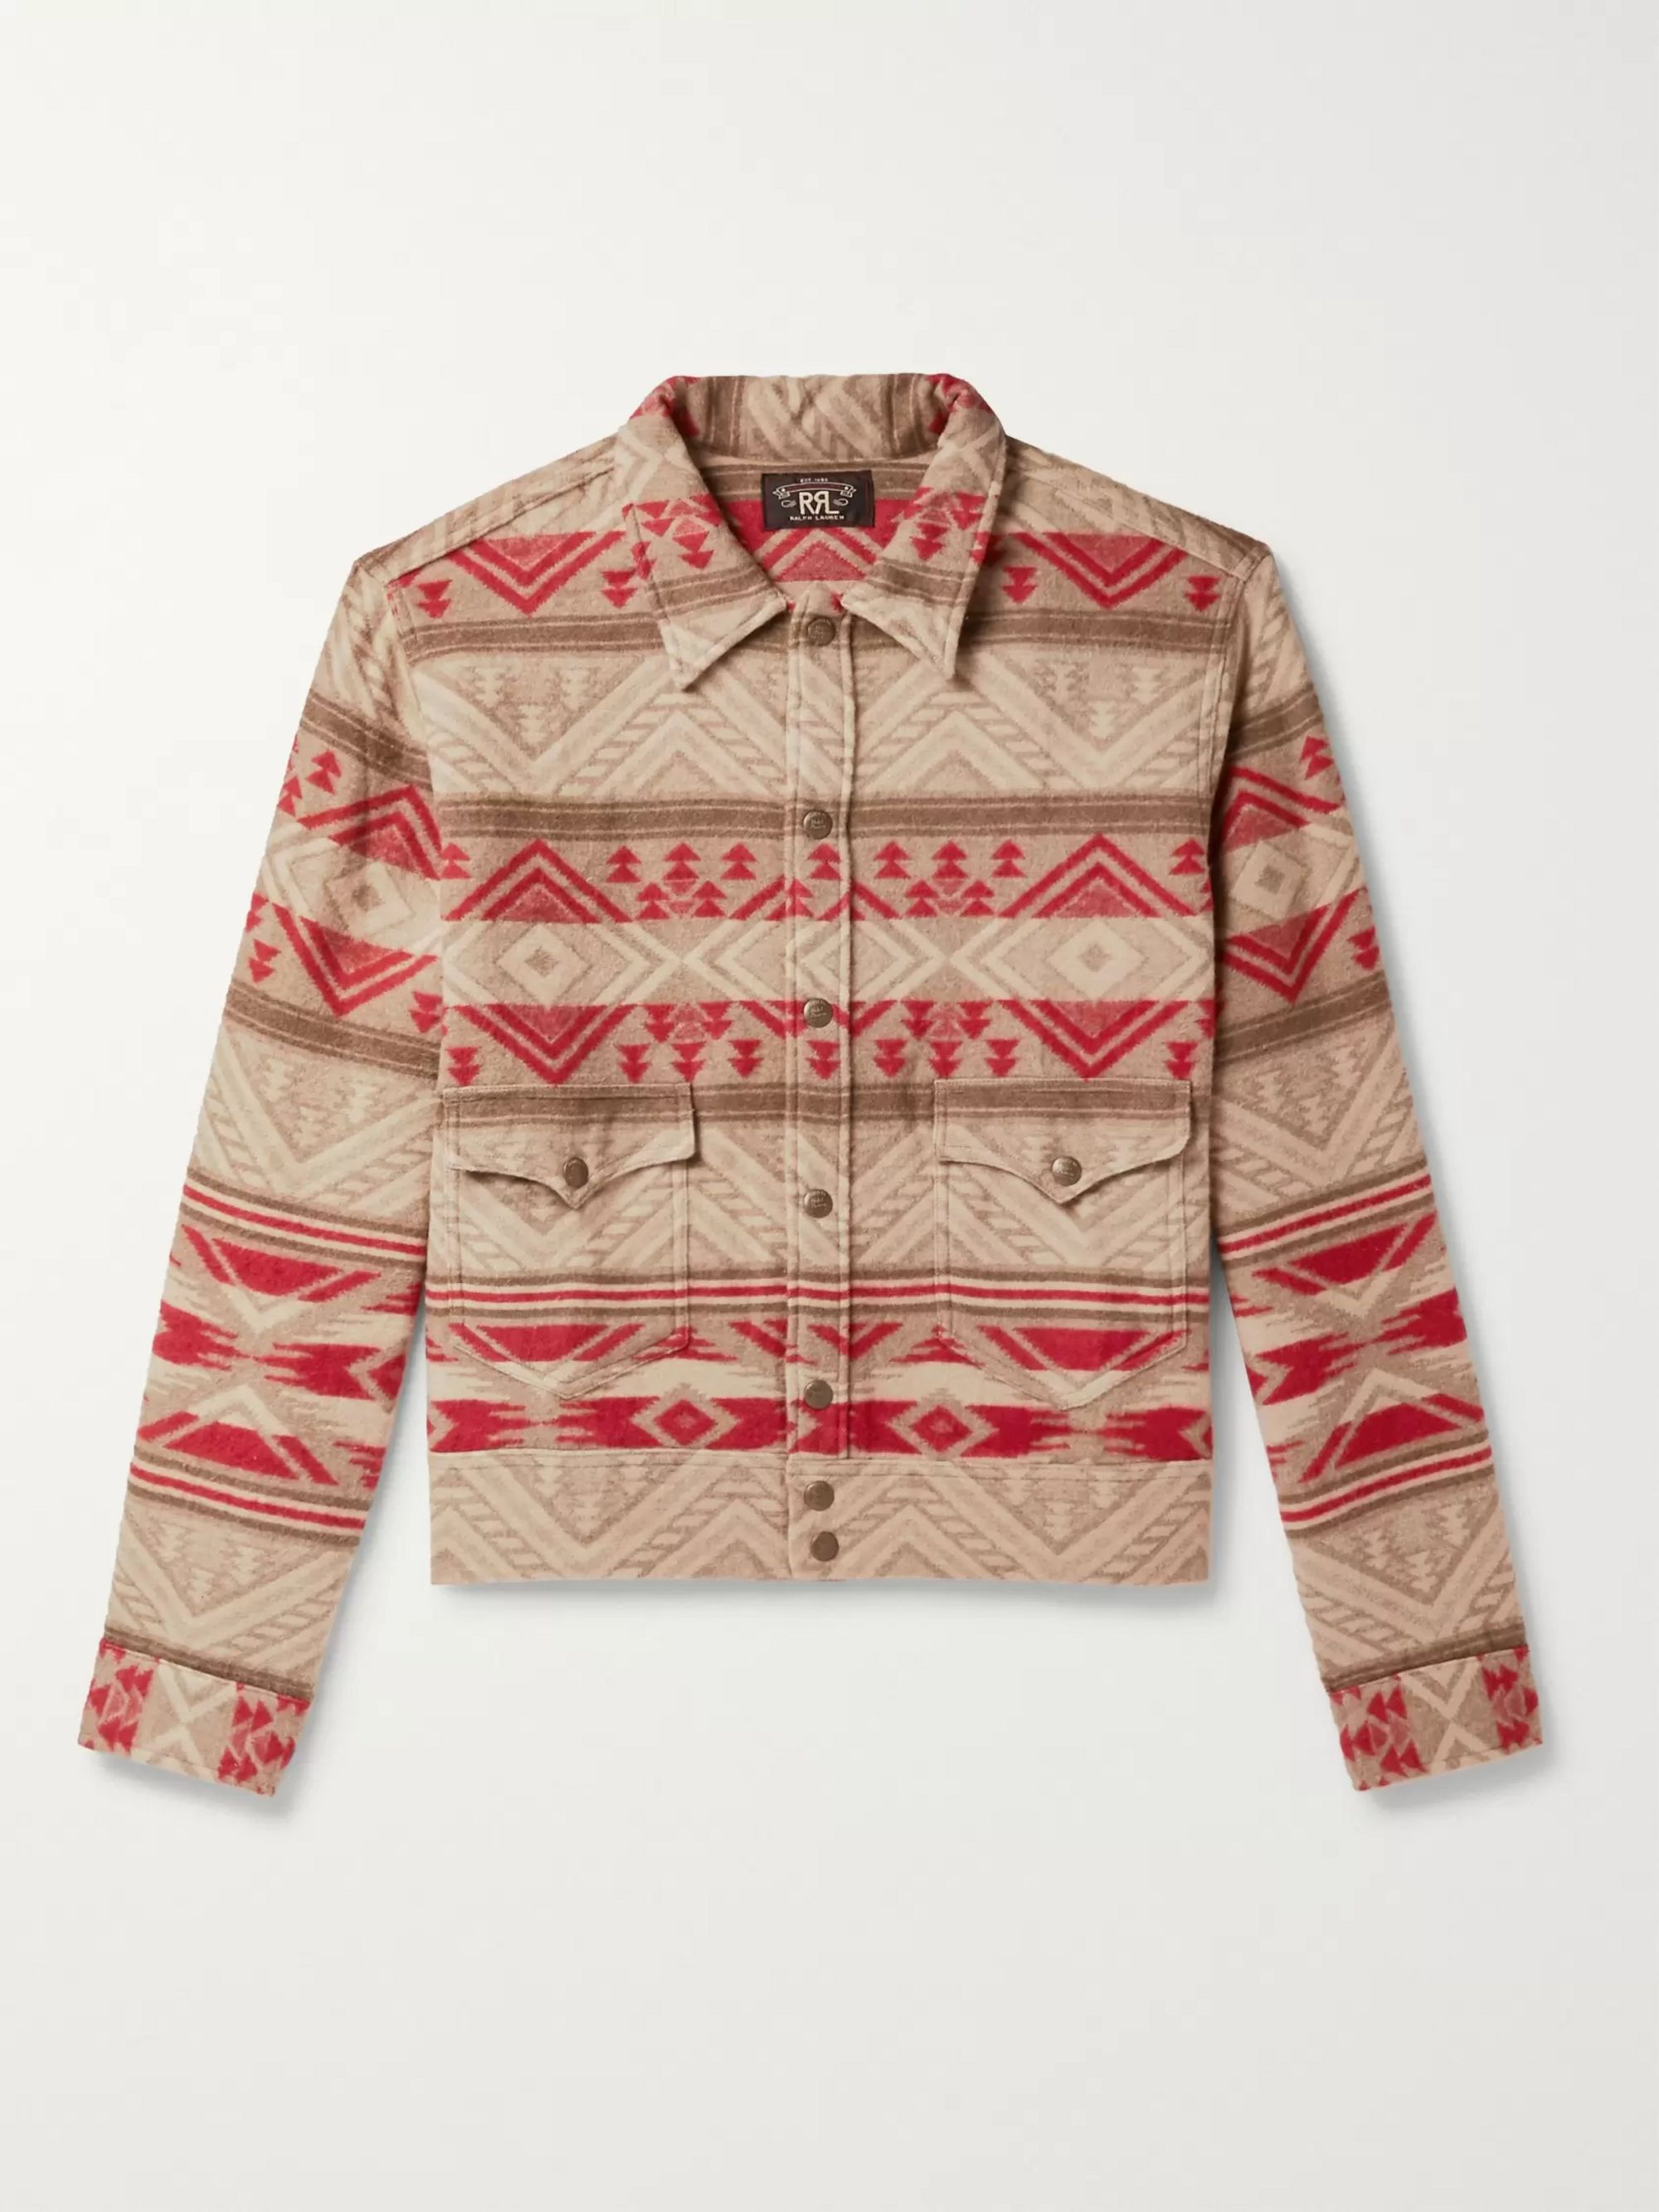 Cotton And Wool Blend Jacquard Overshirt by Rrl